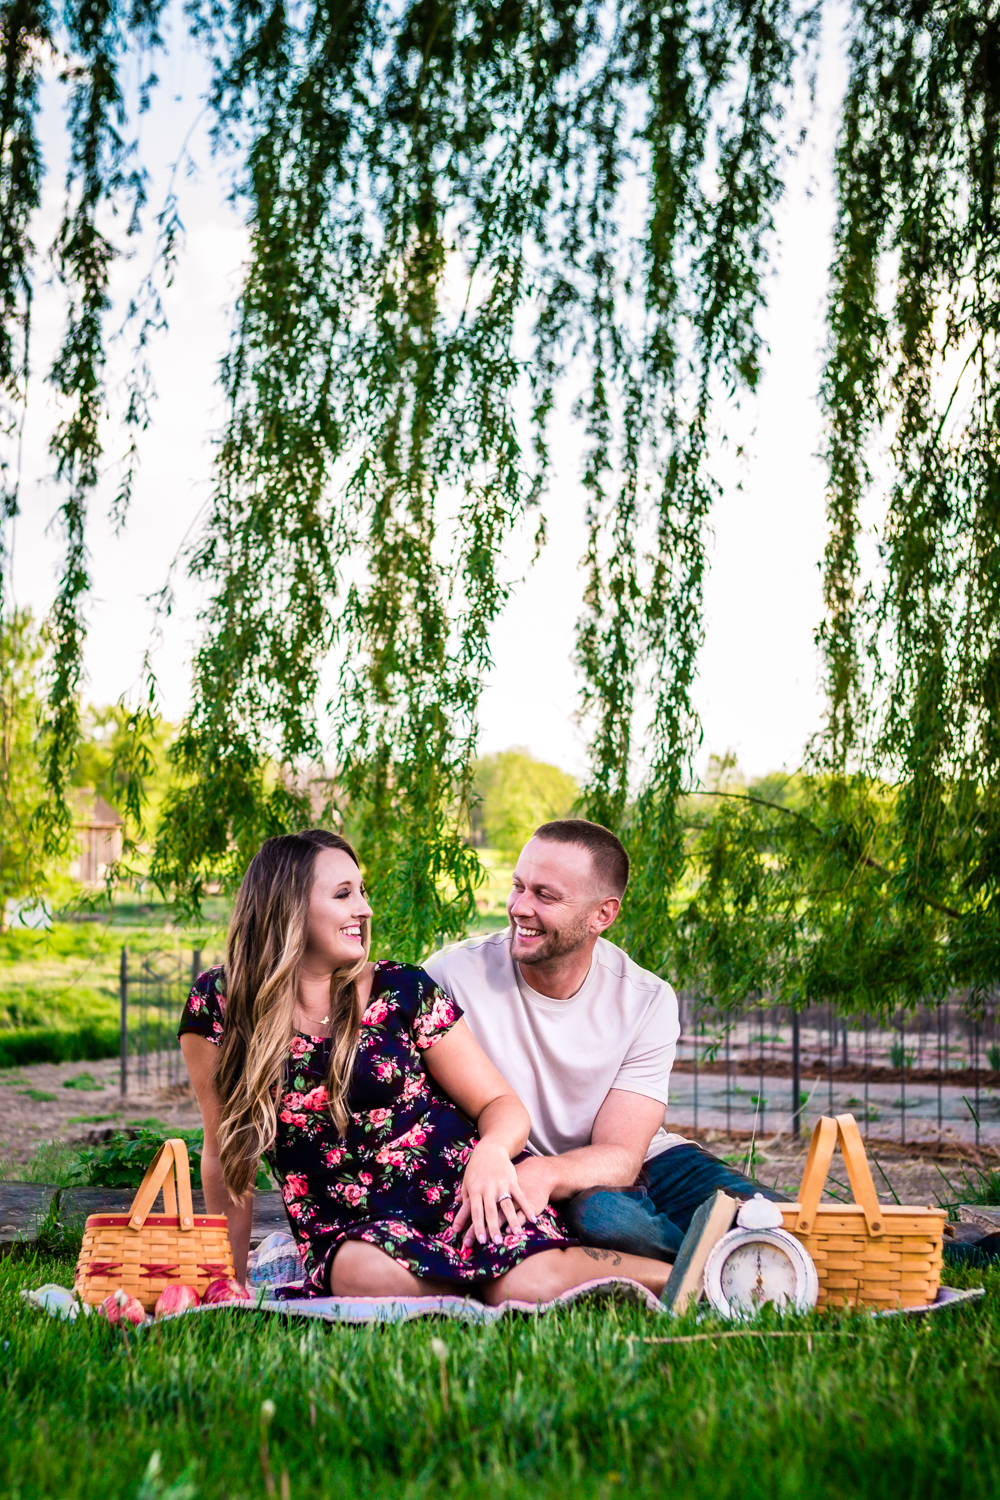 Picnic Engagments at Sandstone Ranch. Take by Jared M. Gant